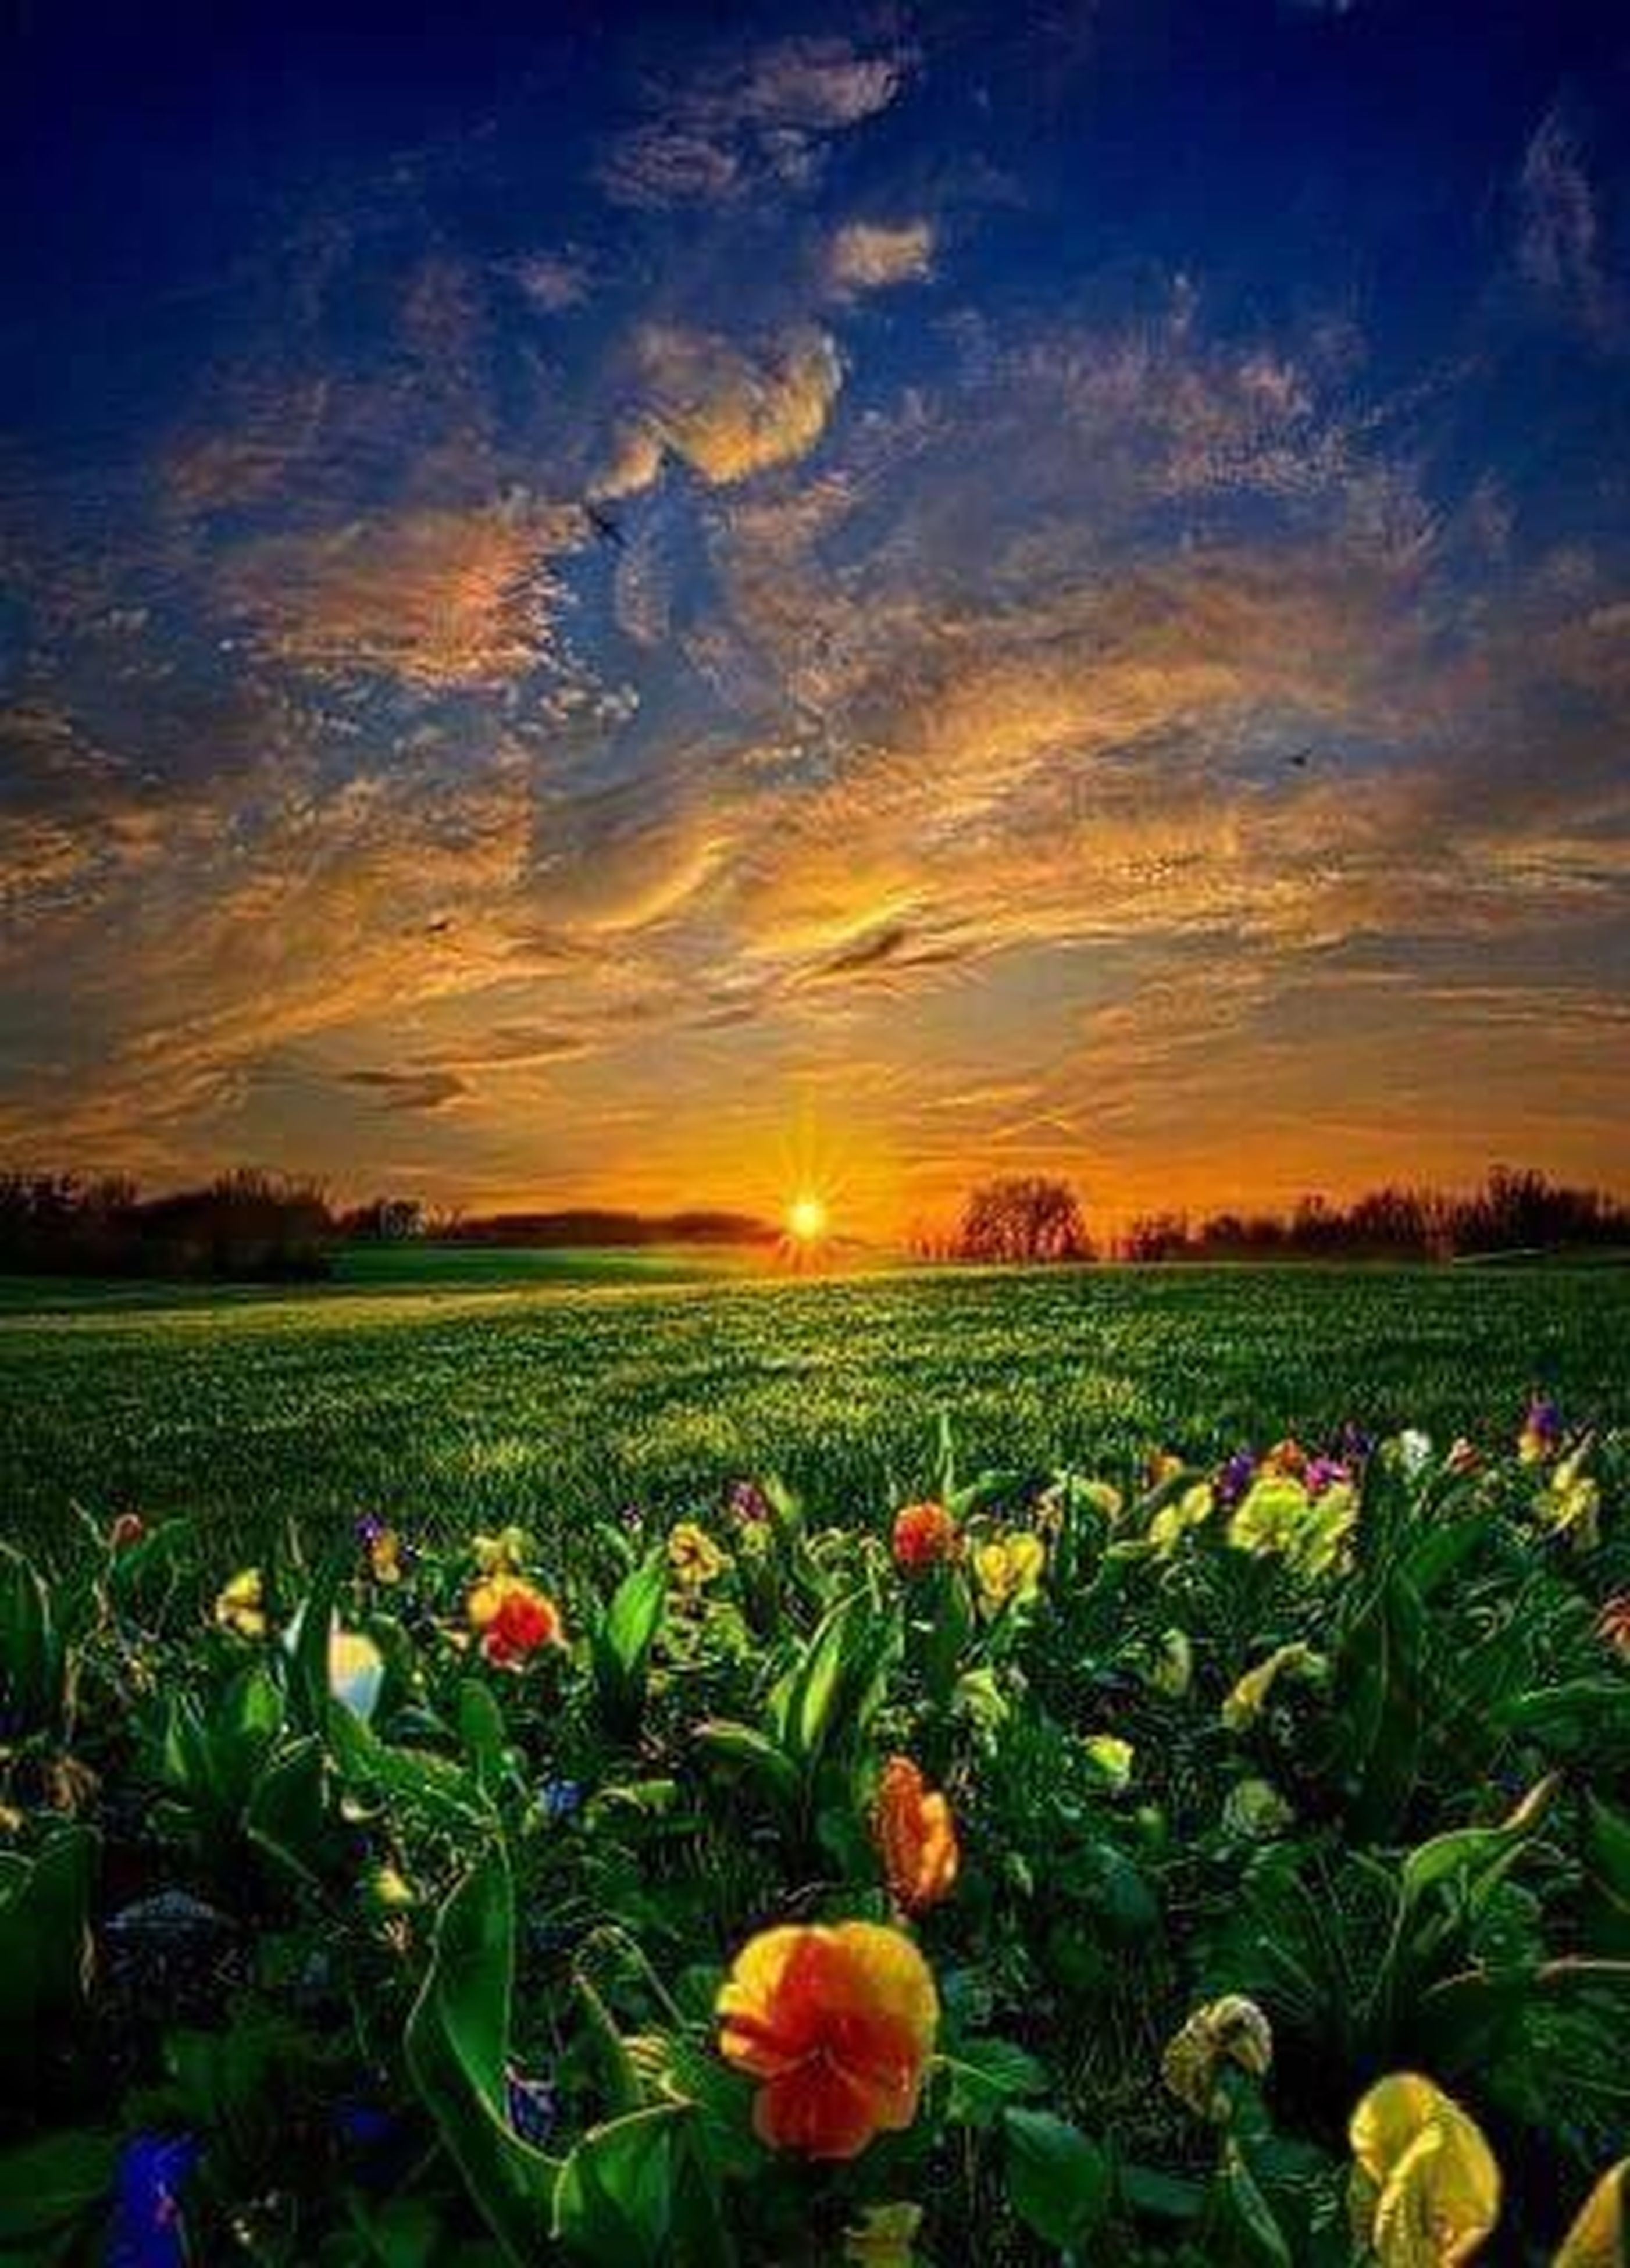 sunset, beauty in nature, tranquil scene, scenics, sky, field, tranquility, nature, landscape, sun, growth, flower, cloud - sky, plant, orange color, idyllic, rural scene, grass, sunlight, agriculture